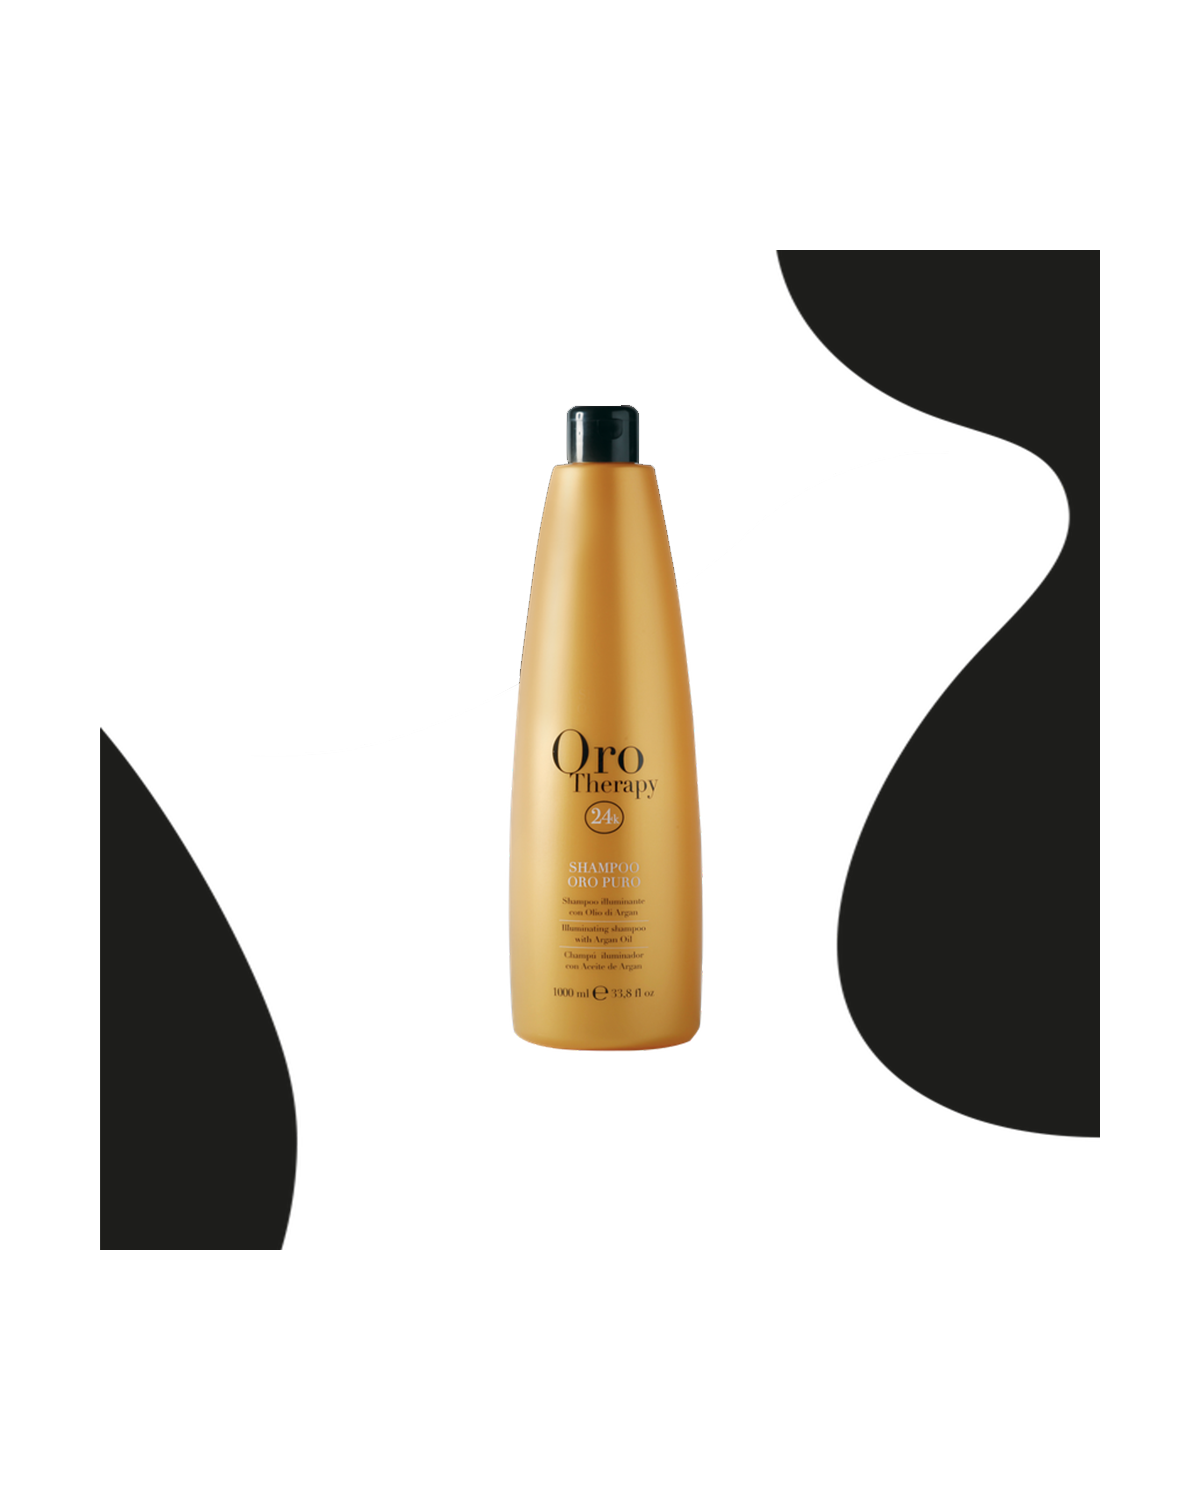 Shampooing 24k à base d'huile d'argan 1000 ml d'or pur - Fanola Oro Therapy